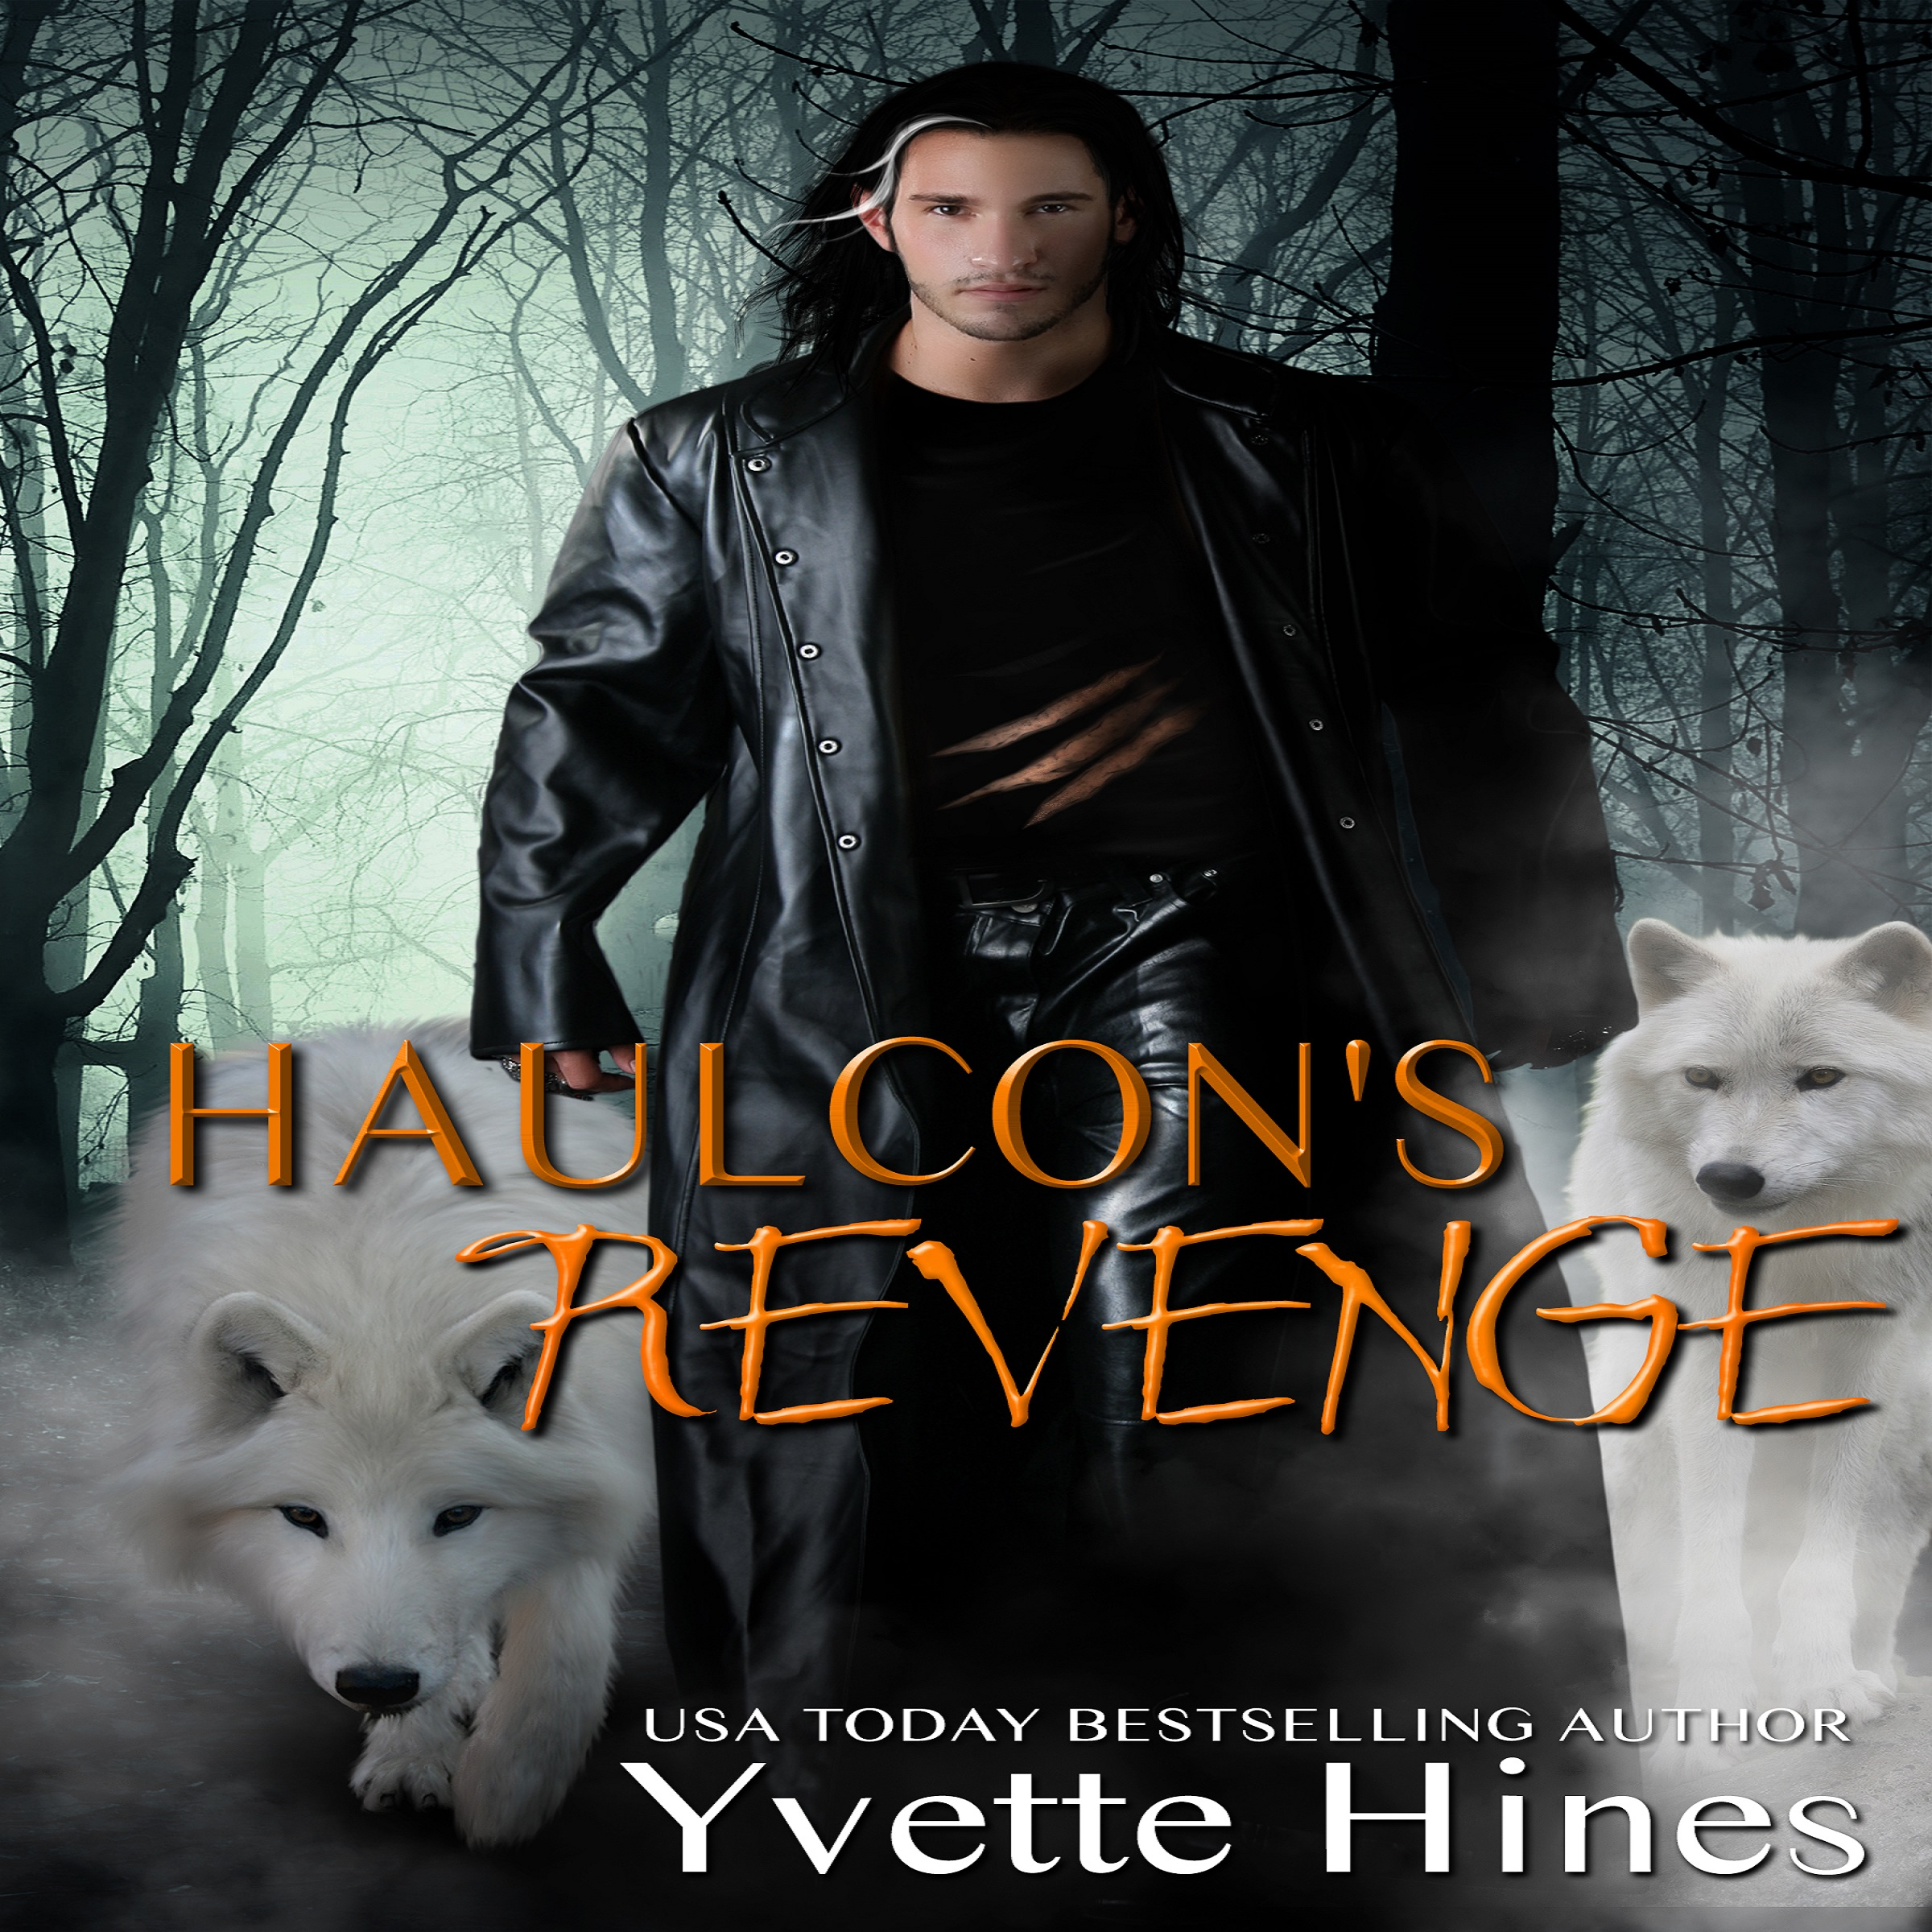 HaulconsRevenge_ACX Cover